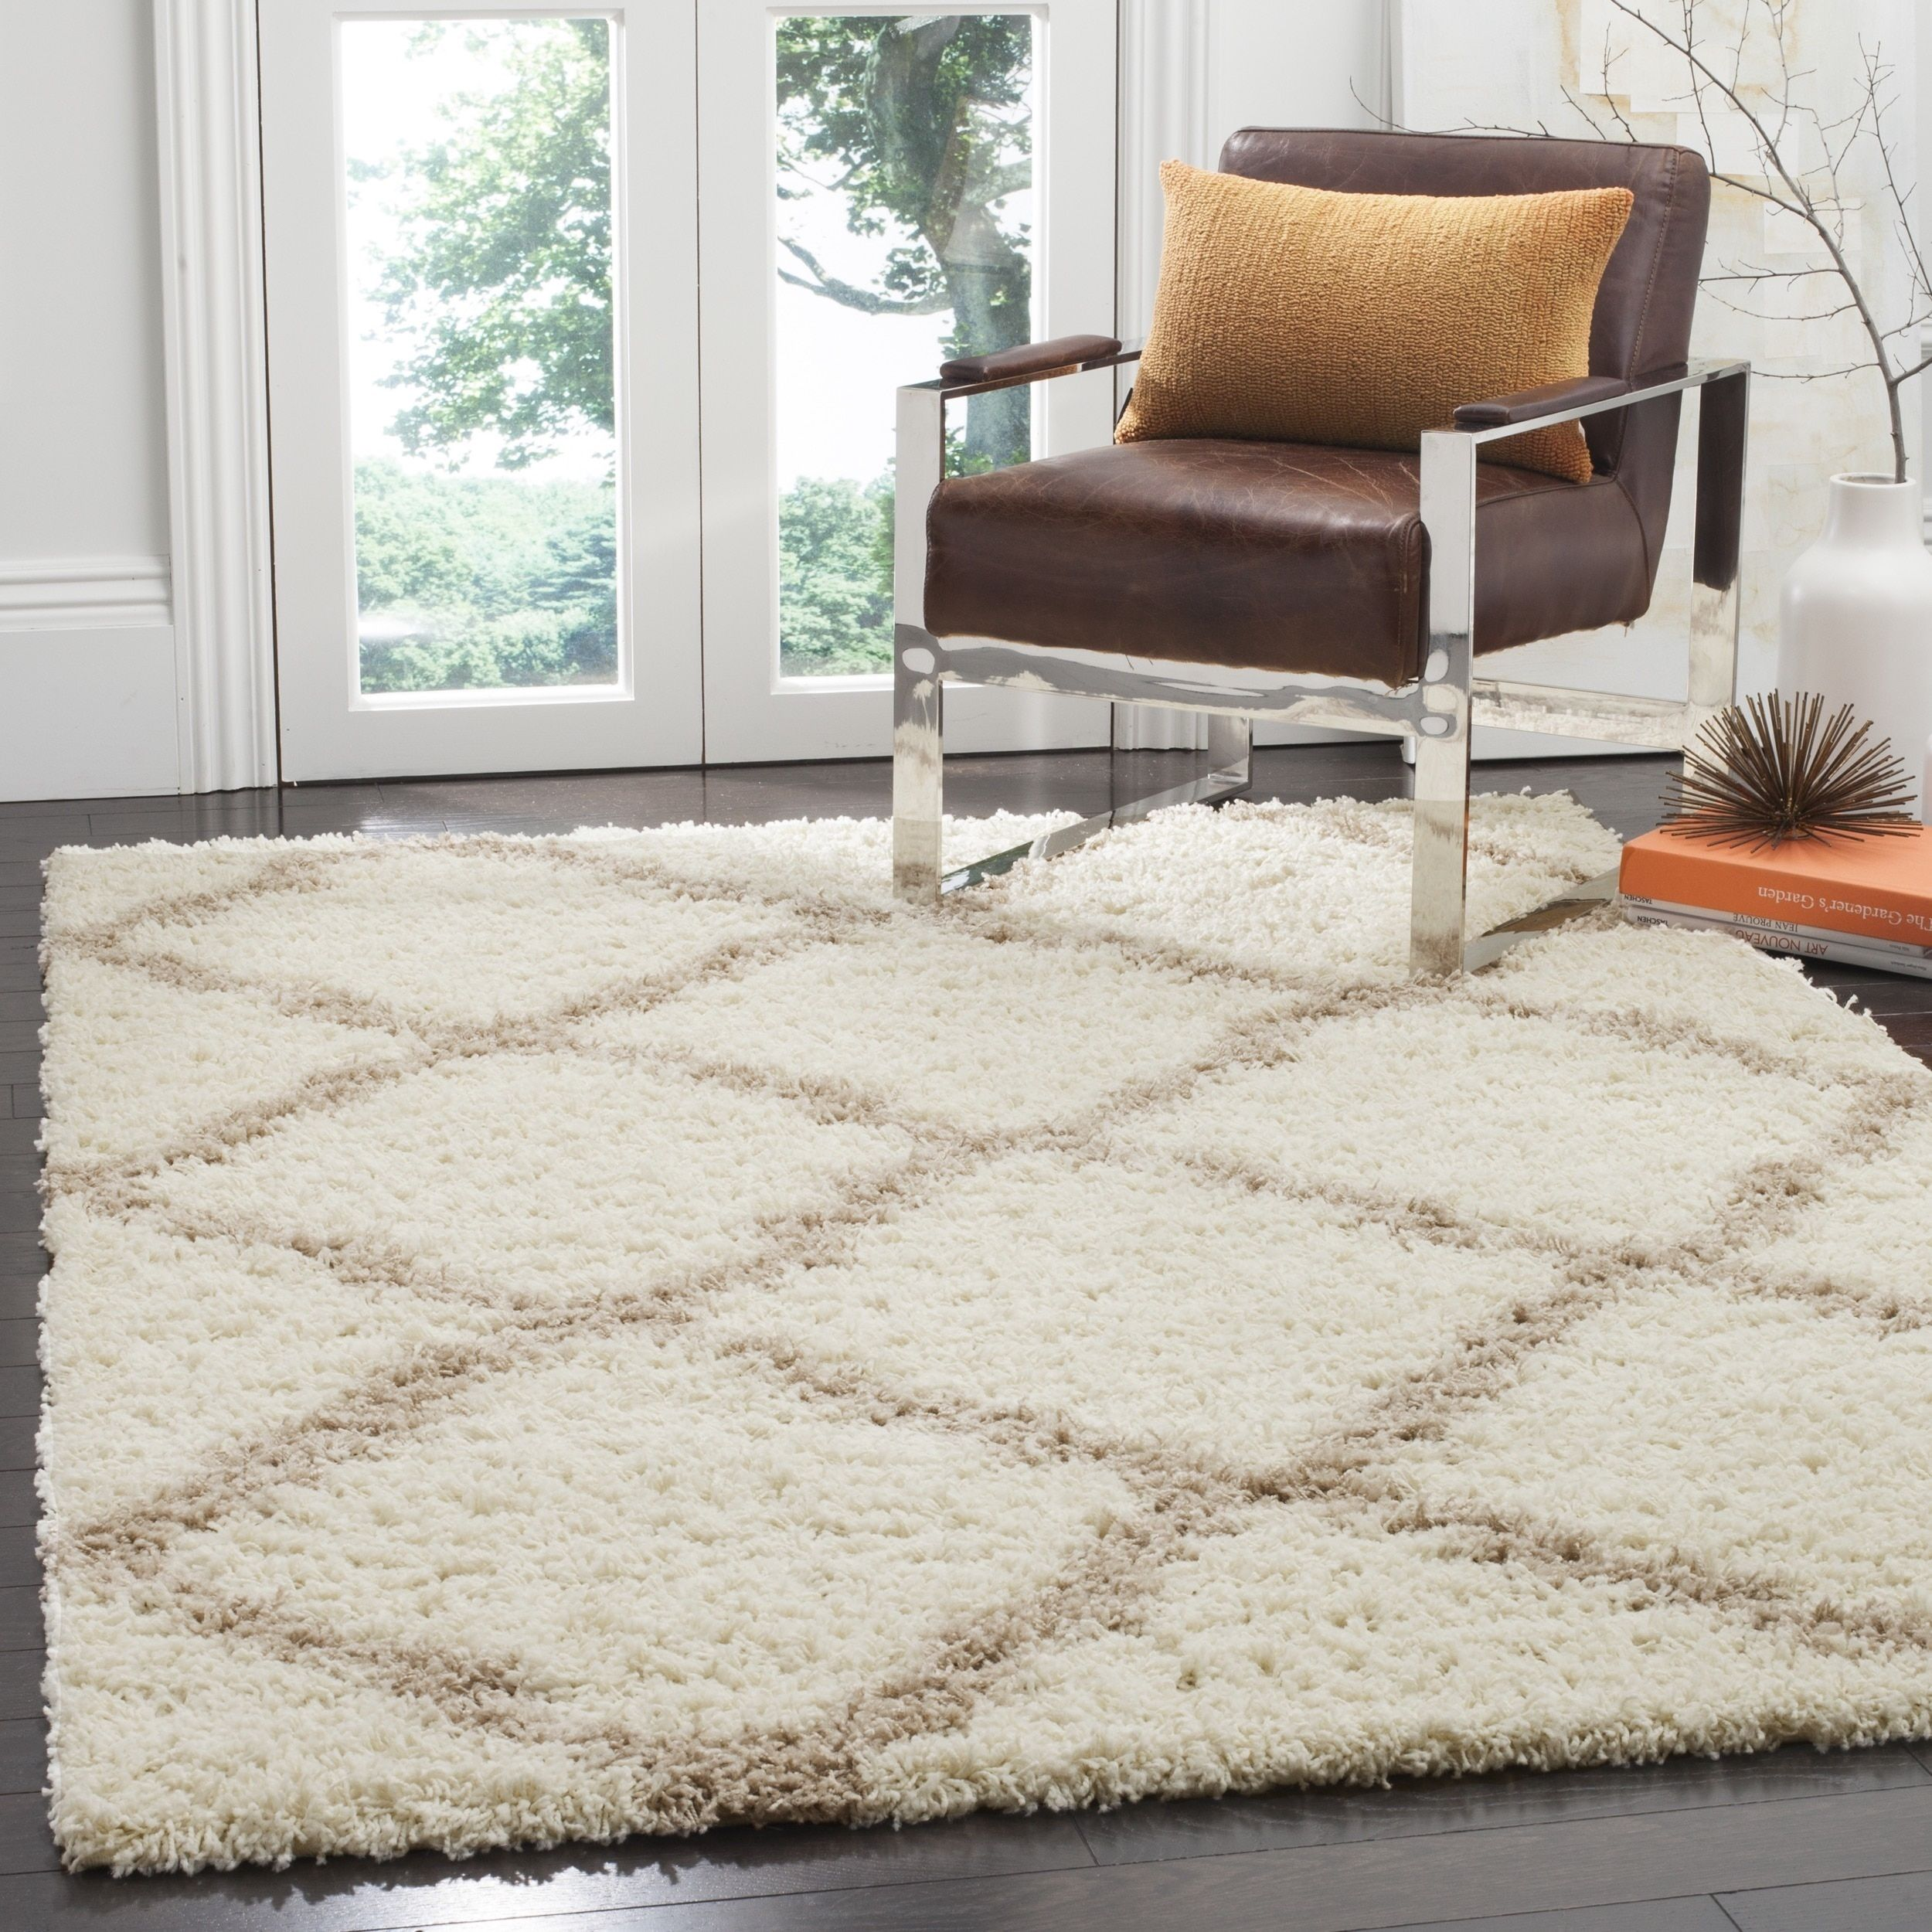 rug for living room size%0A Large area rugs